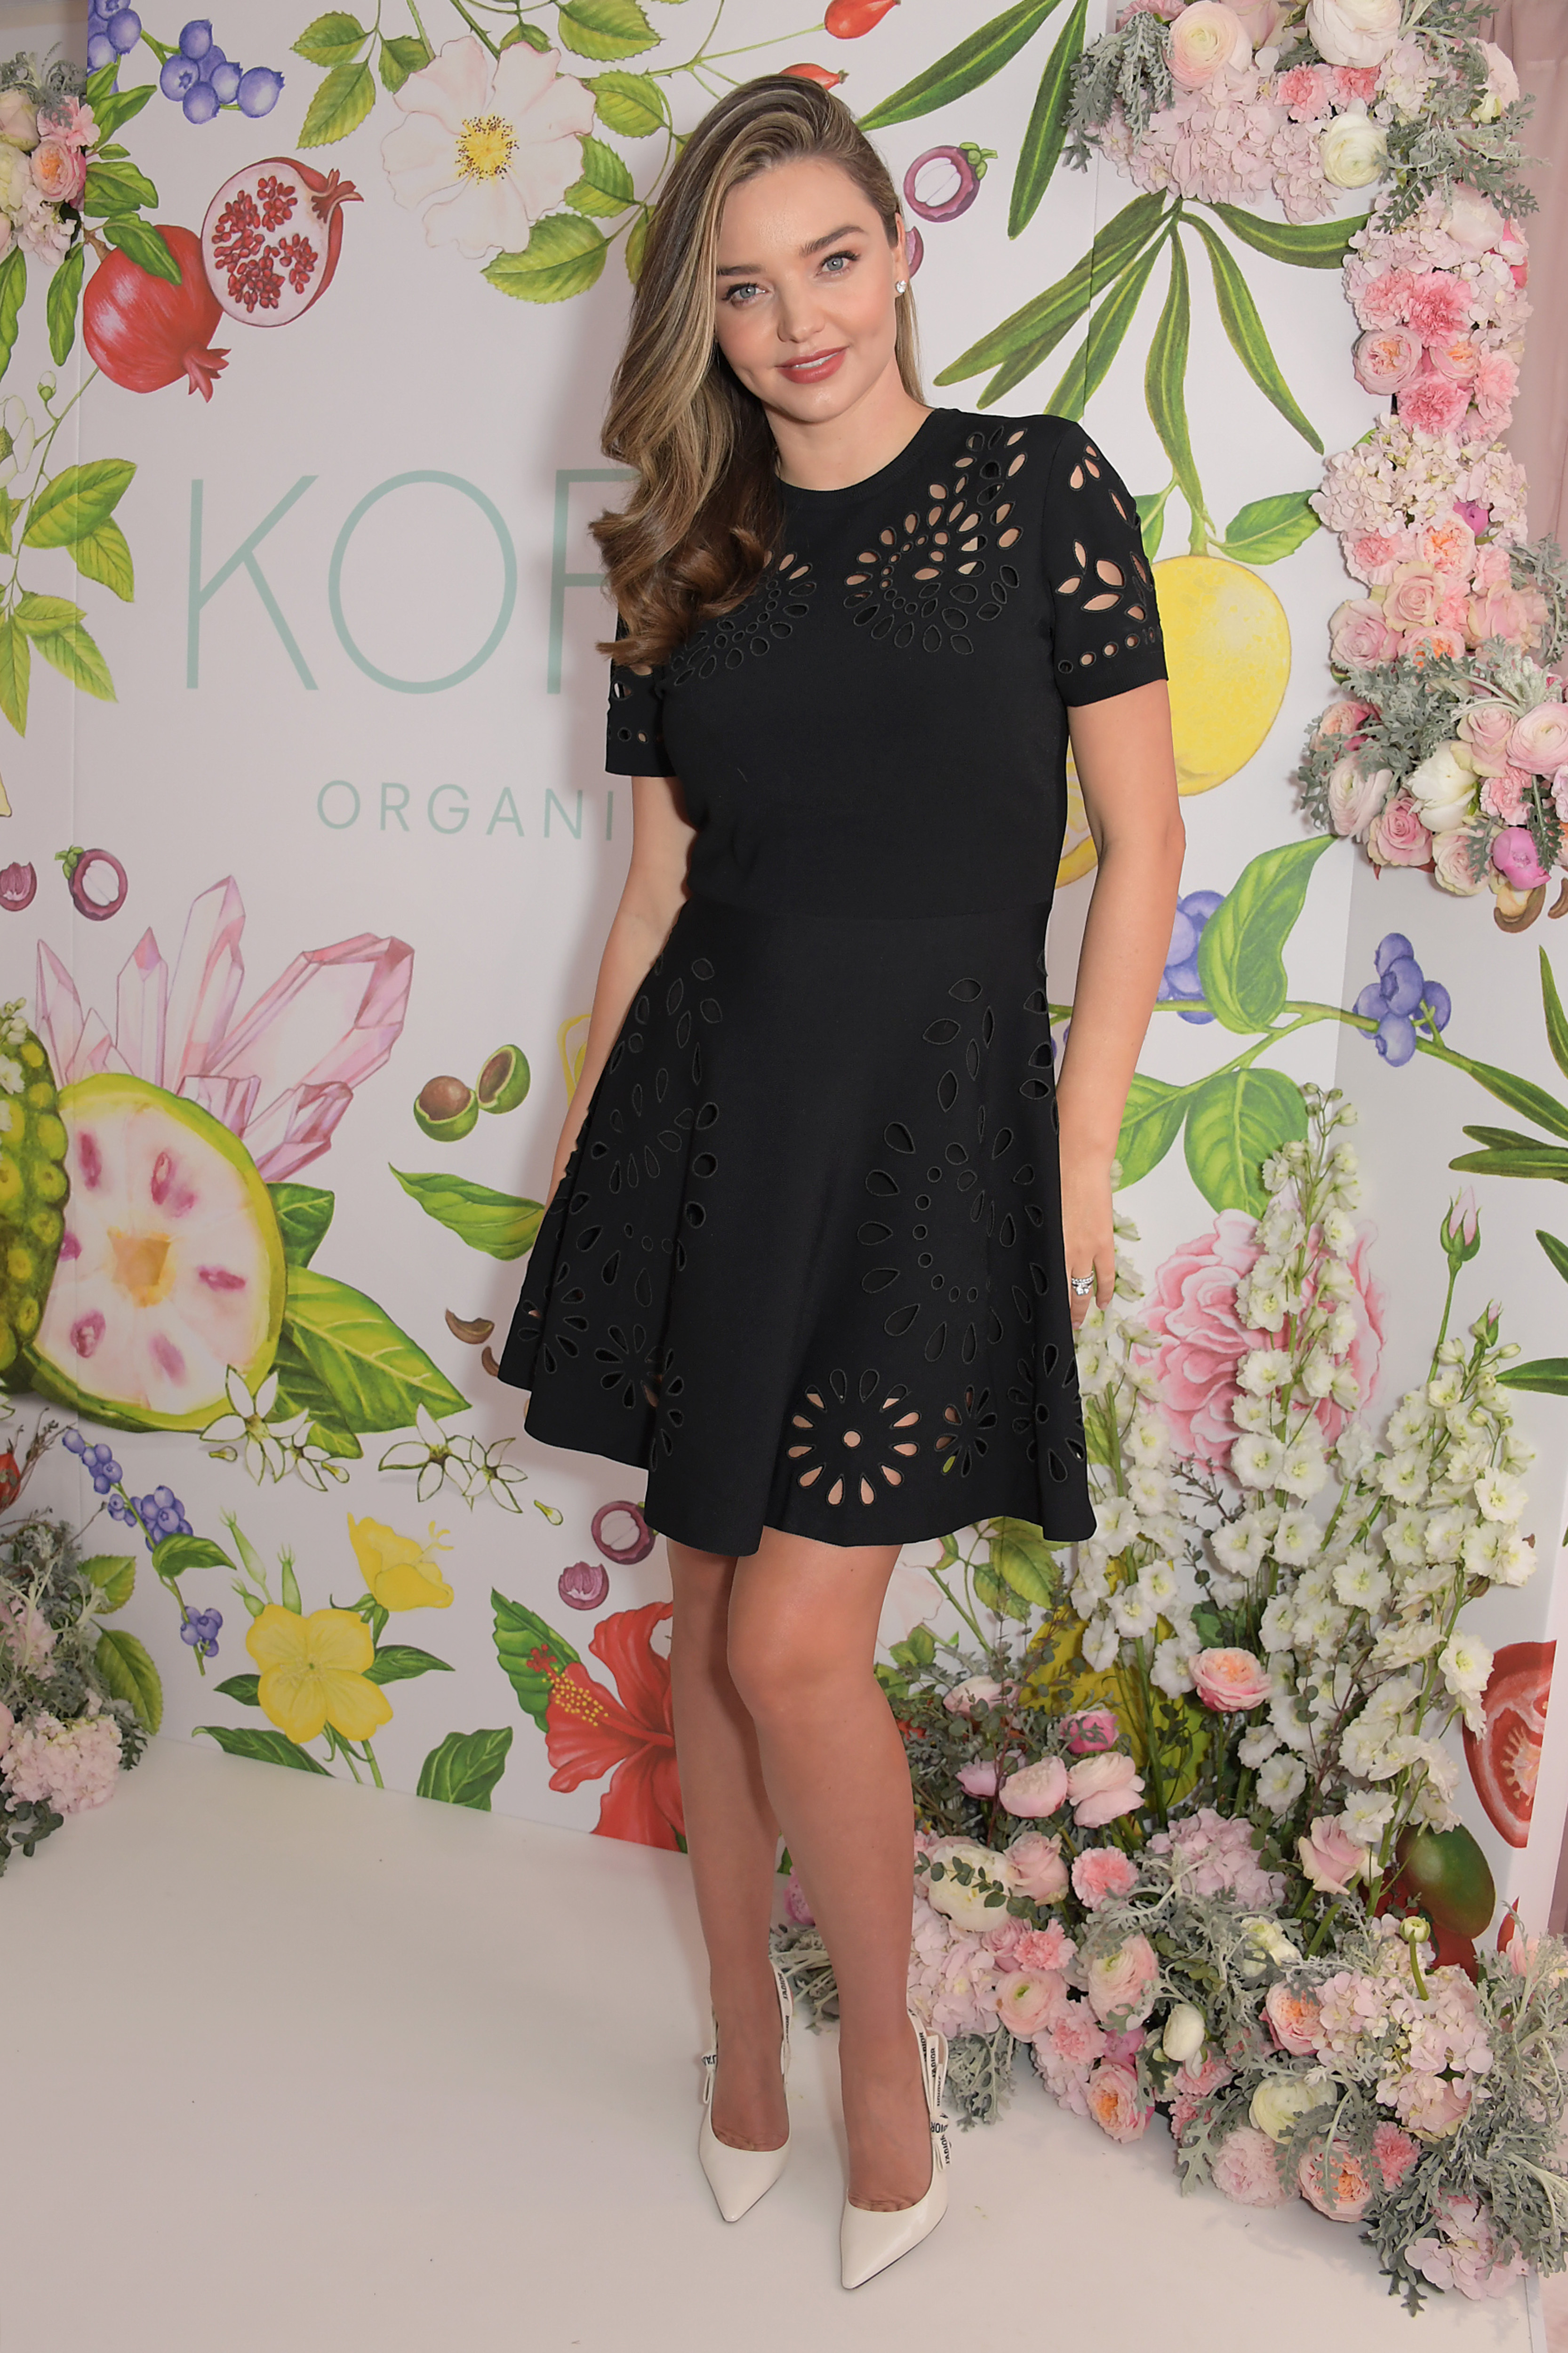 Miranda Kerr visits beauty retailer Space NK in London to celebrate the launch of Kora, her certified organic skincare line, in London on April 2, 2019.